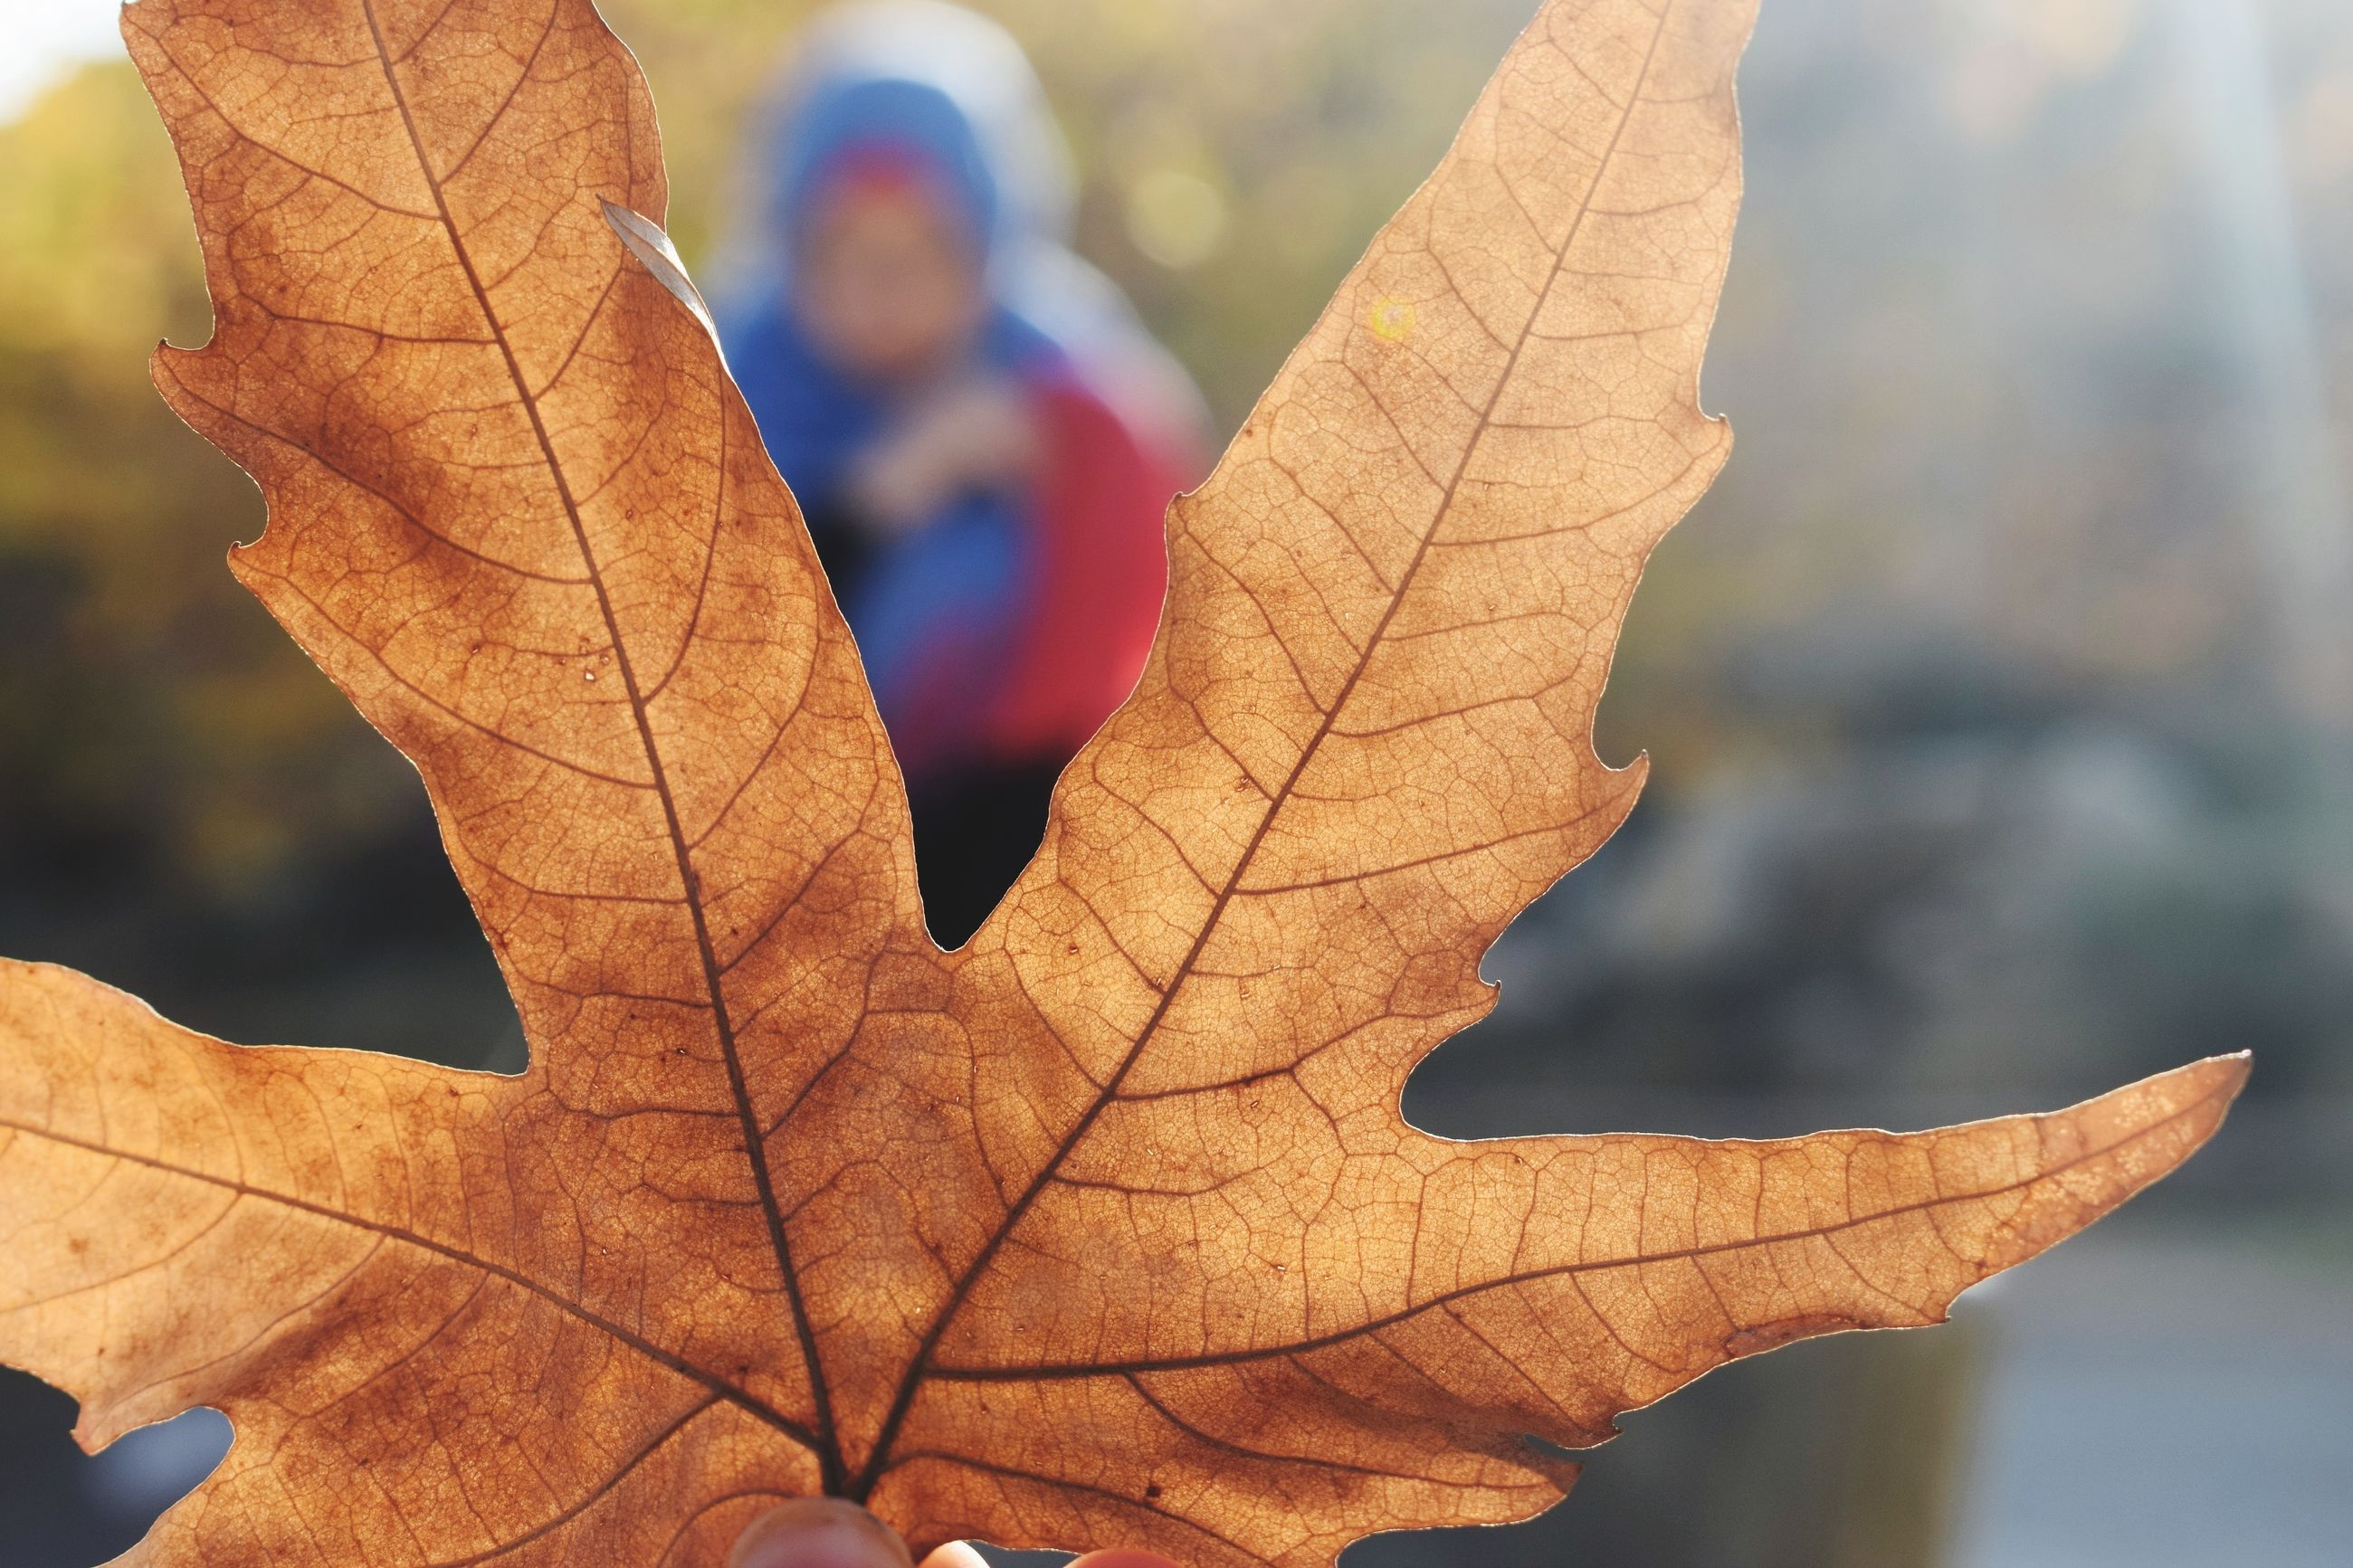 plant part, leaf, focus on foreground, close-up, leaf vein, change, autumn, dry, nature, day, vulnerability, fragility, no people, plant, orange color, outdoors, beauty in nature, leaves, selective focus, maple leaf, autumn collection, natural condition, dried